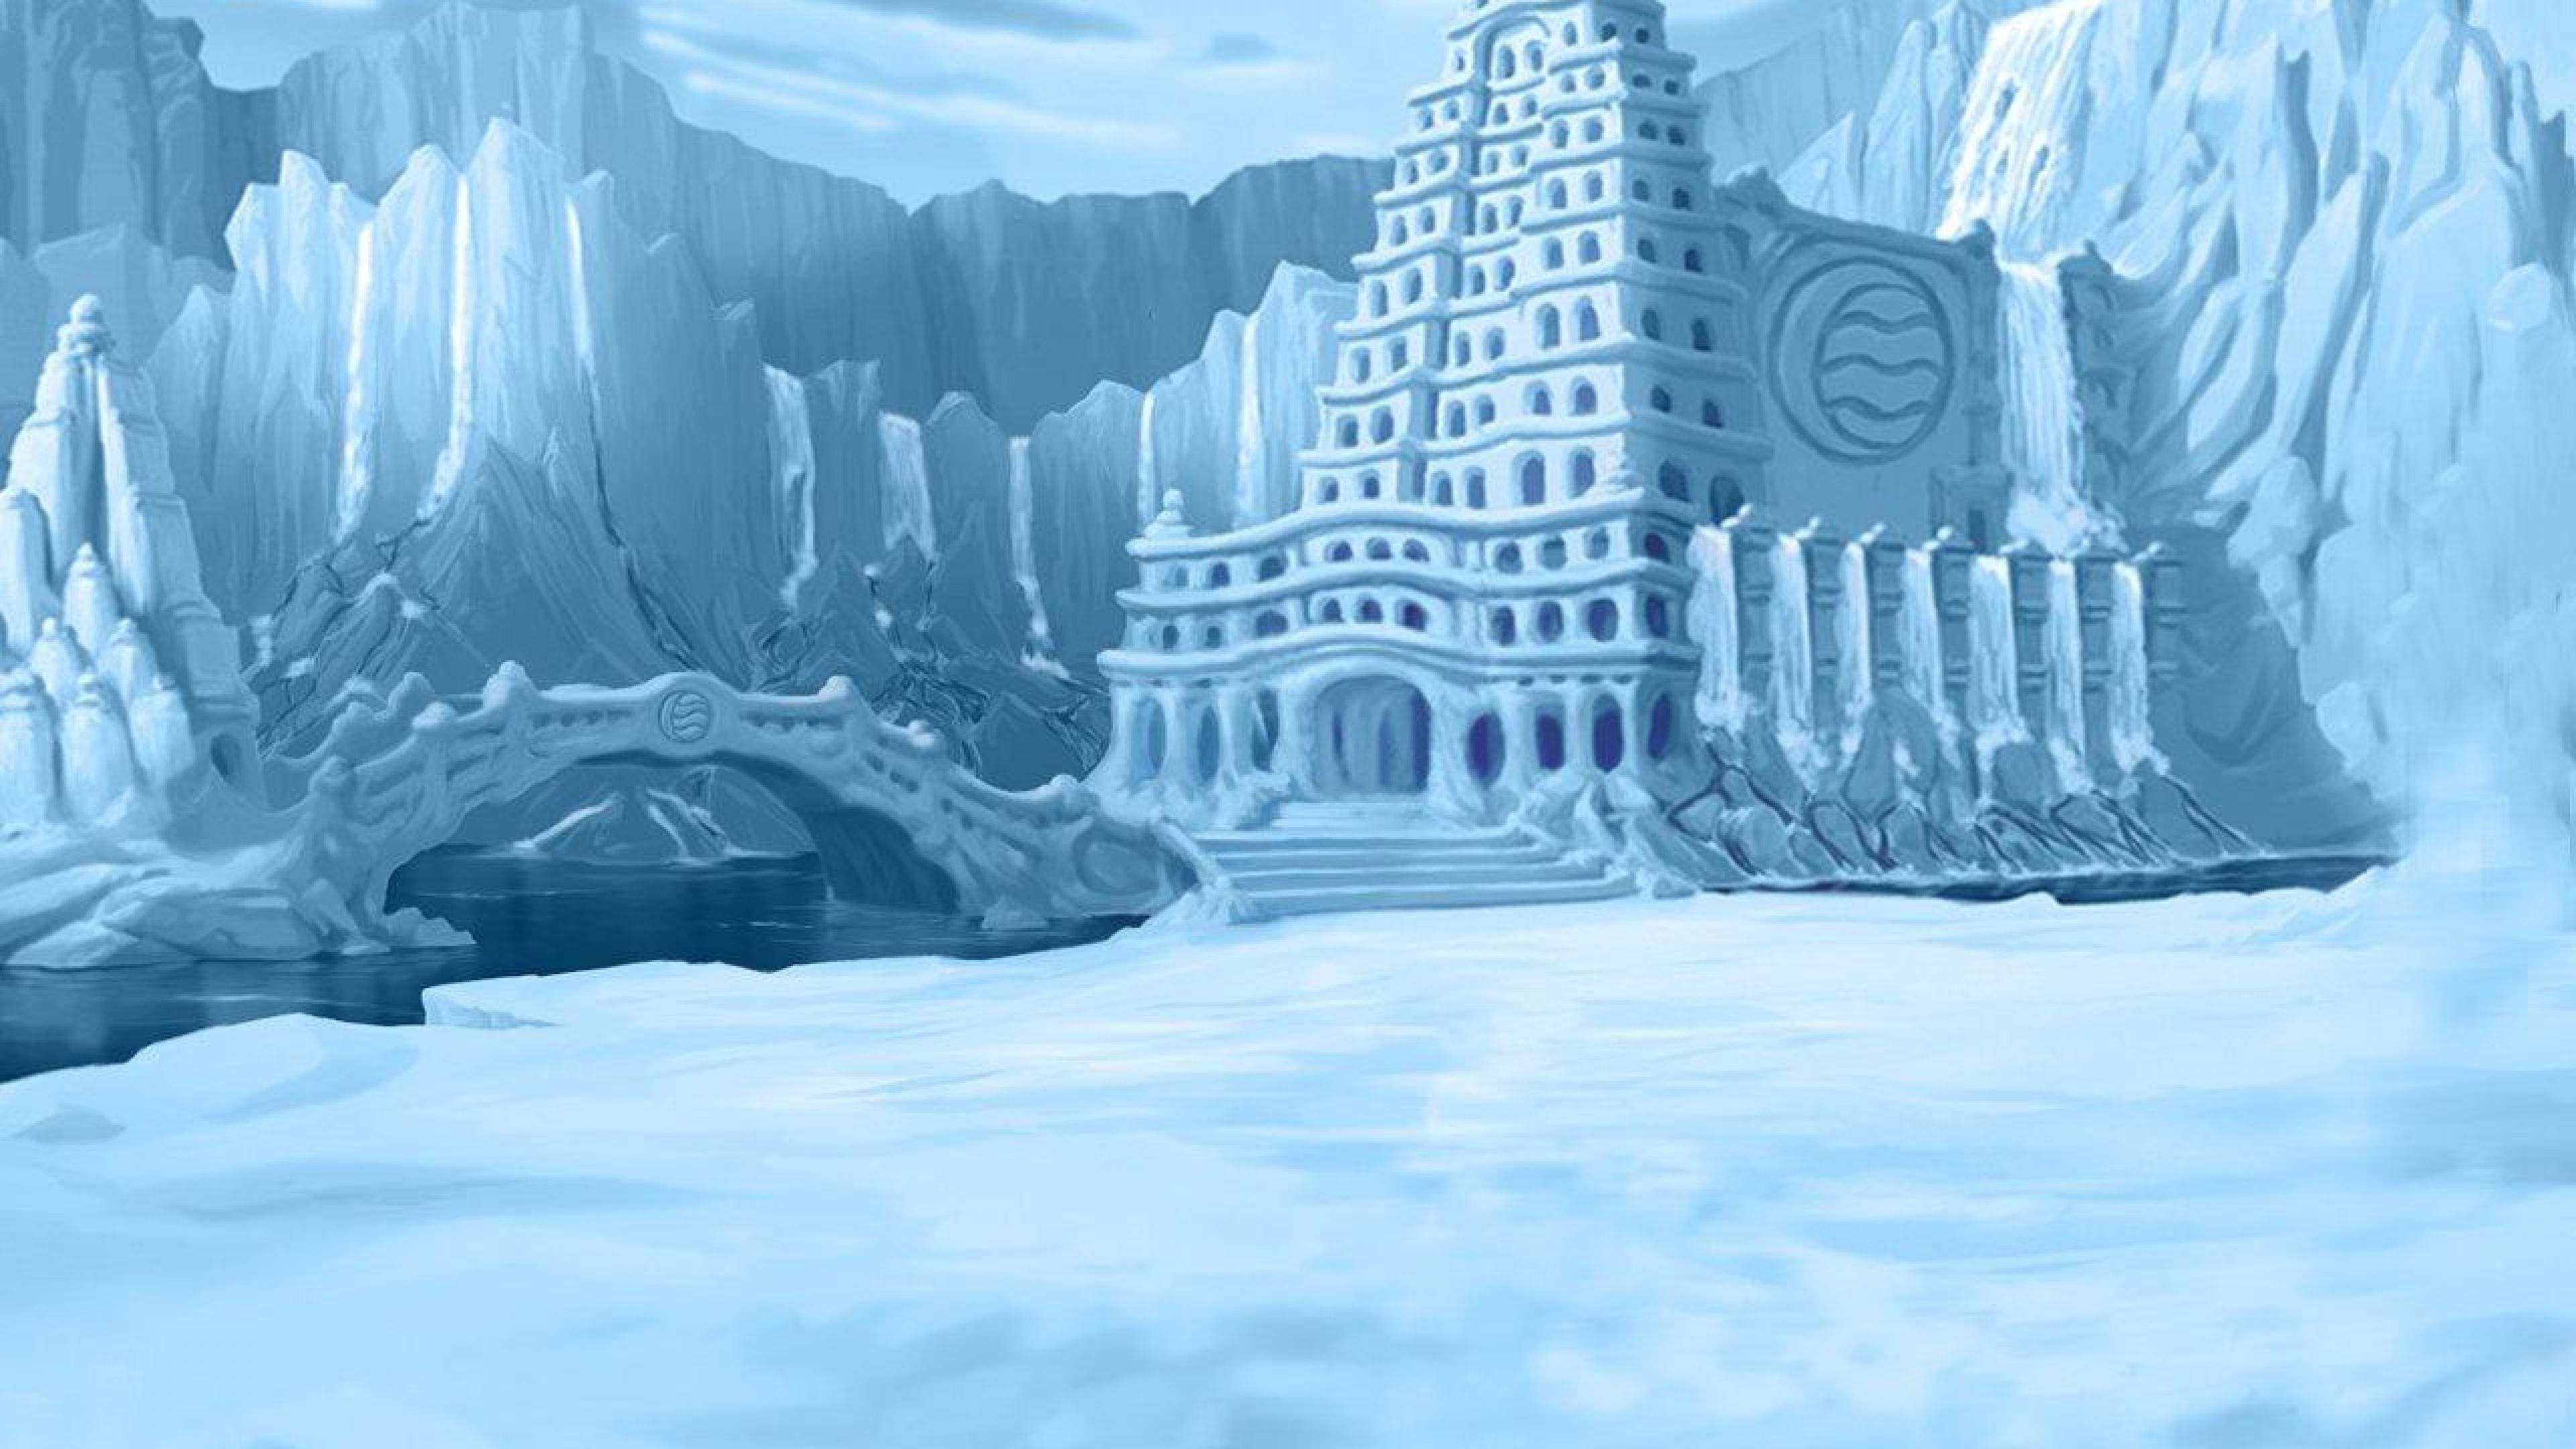 North Pole Wallpapers 183 ① Wallpapertag